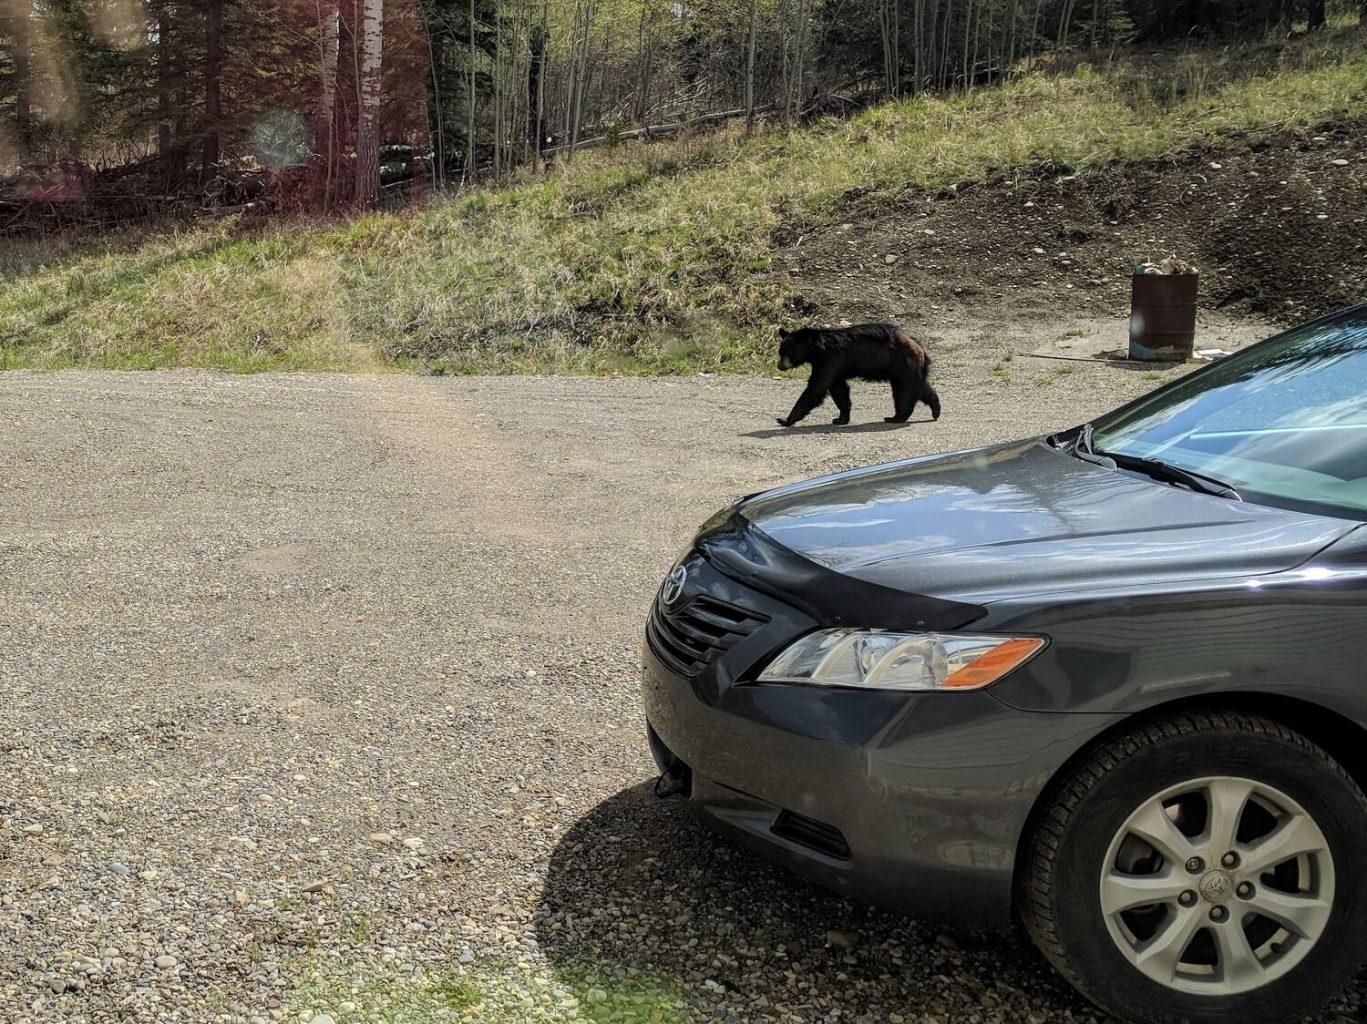 Black bear by our car